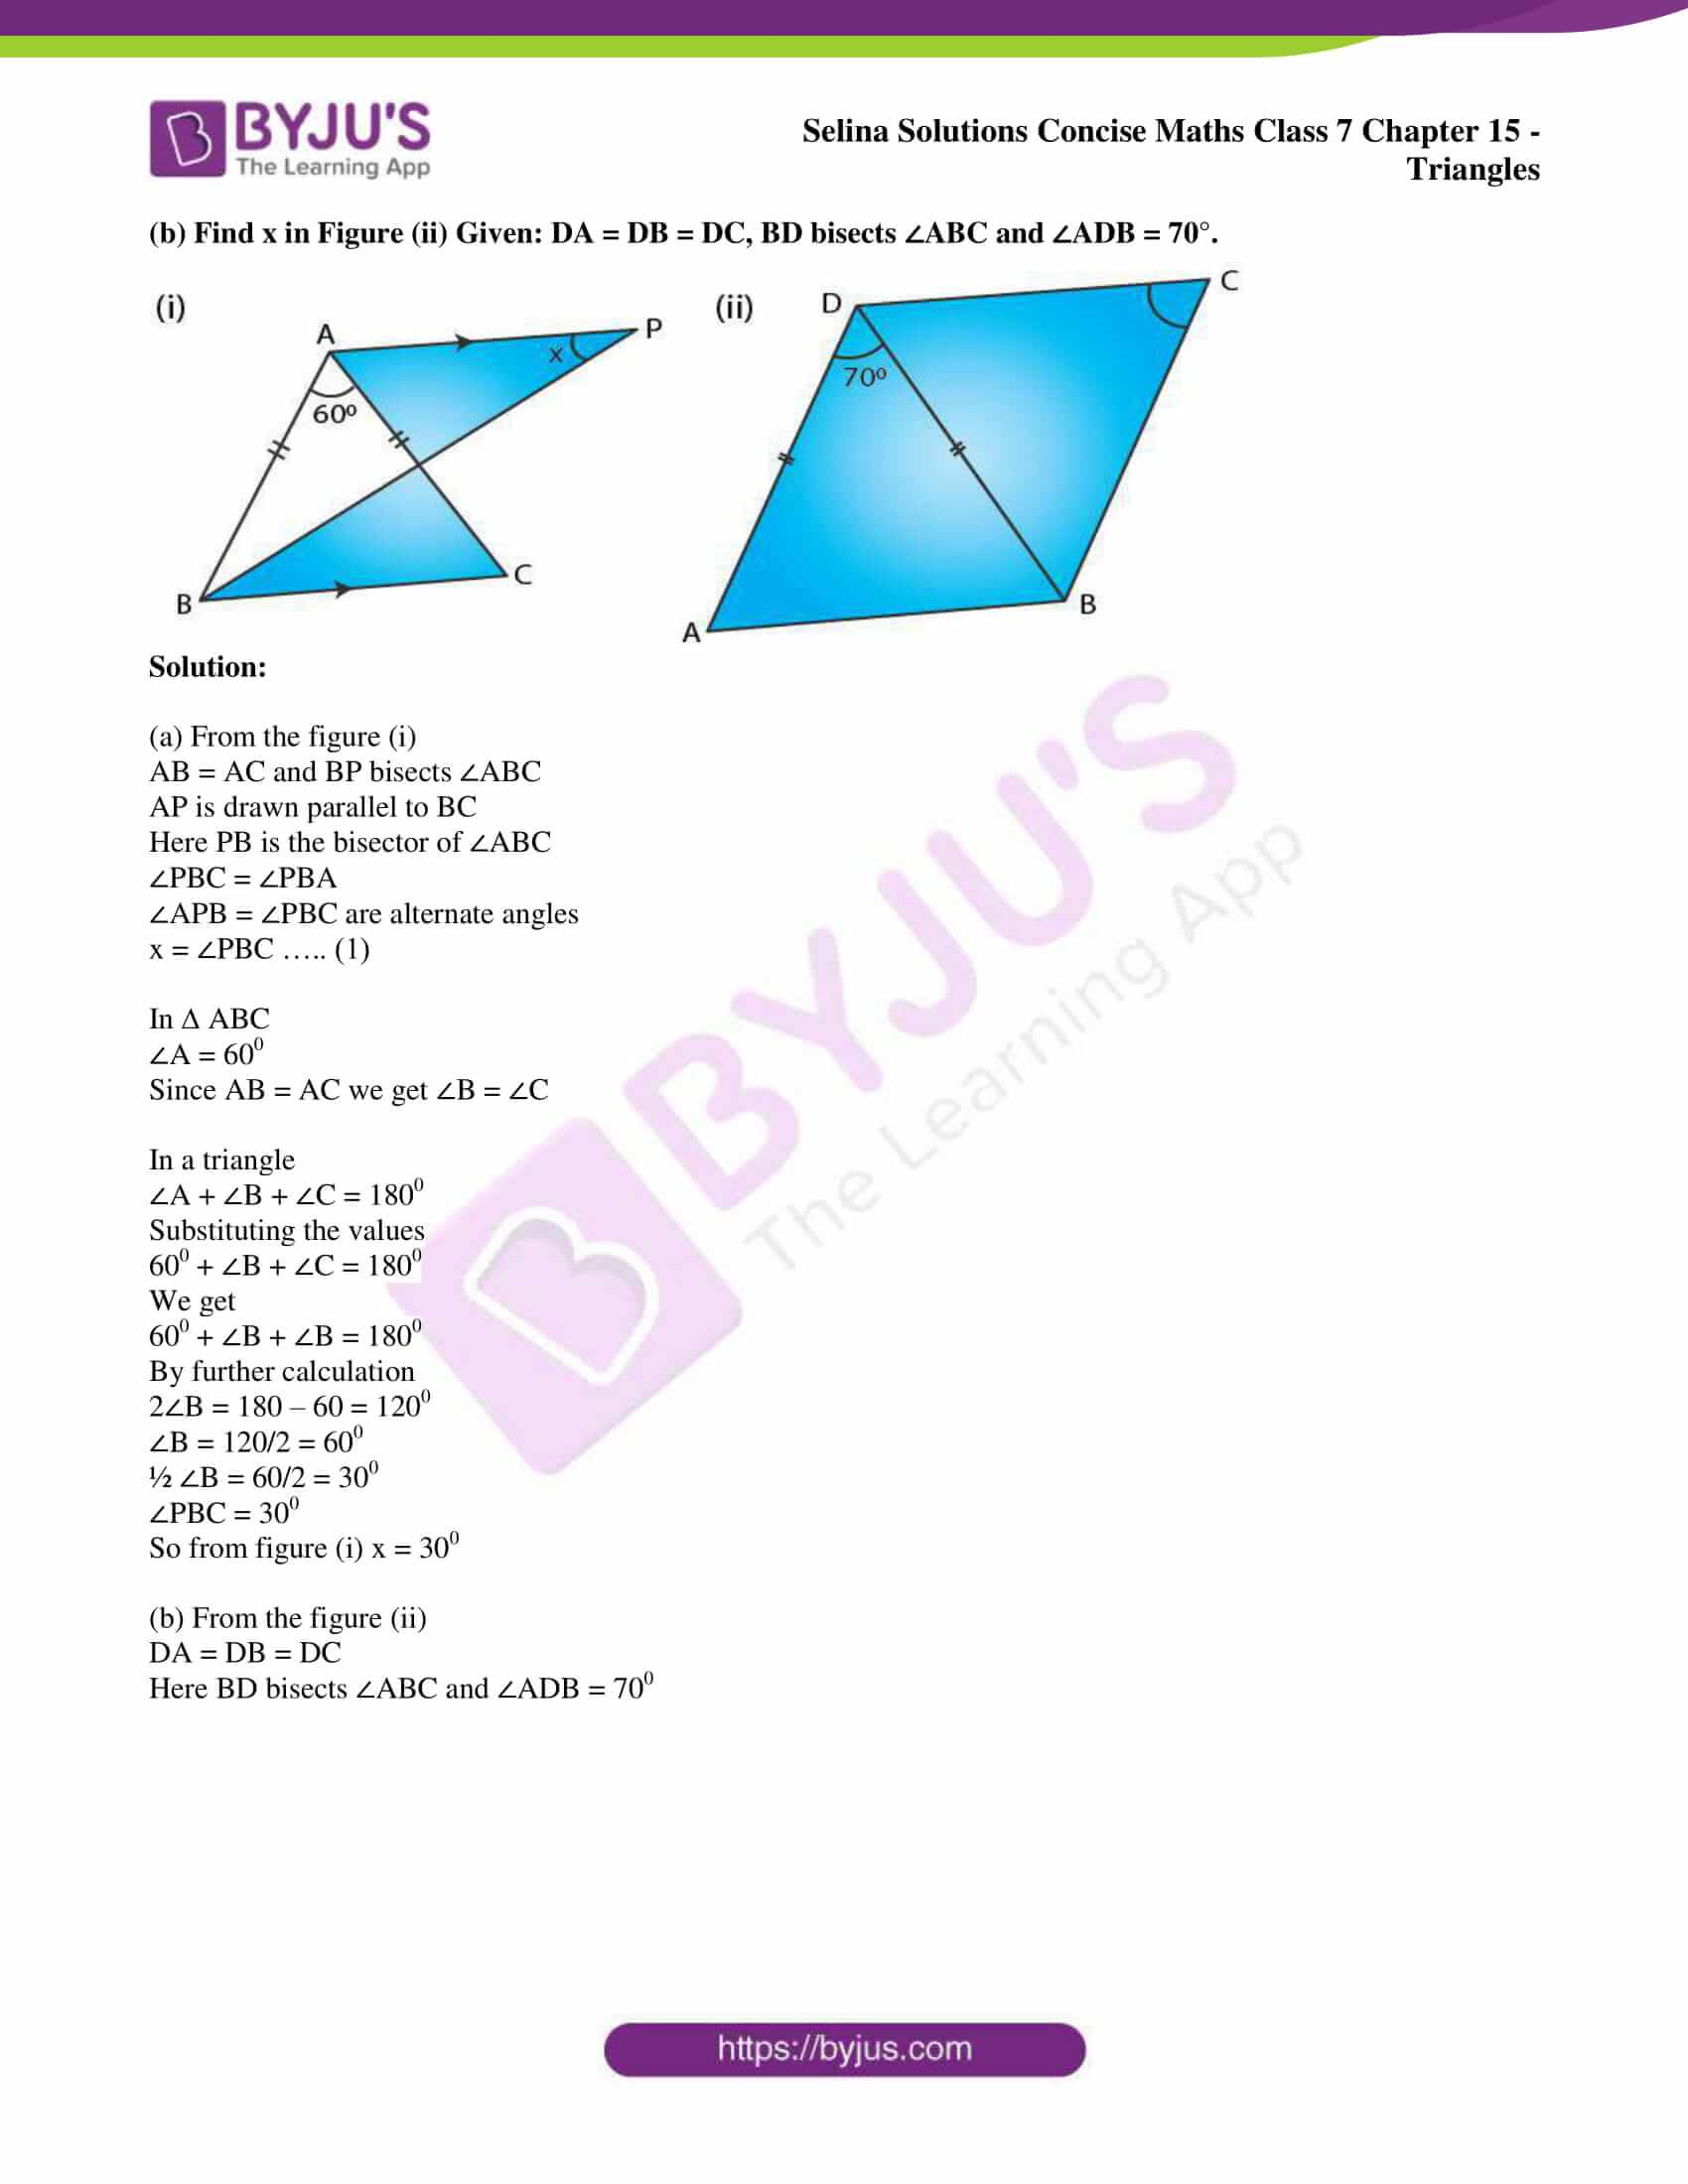 selina sol concise maths class 7 chapter 15 ex b 10